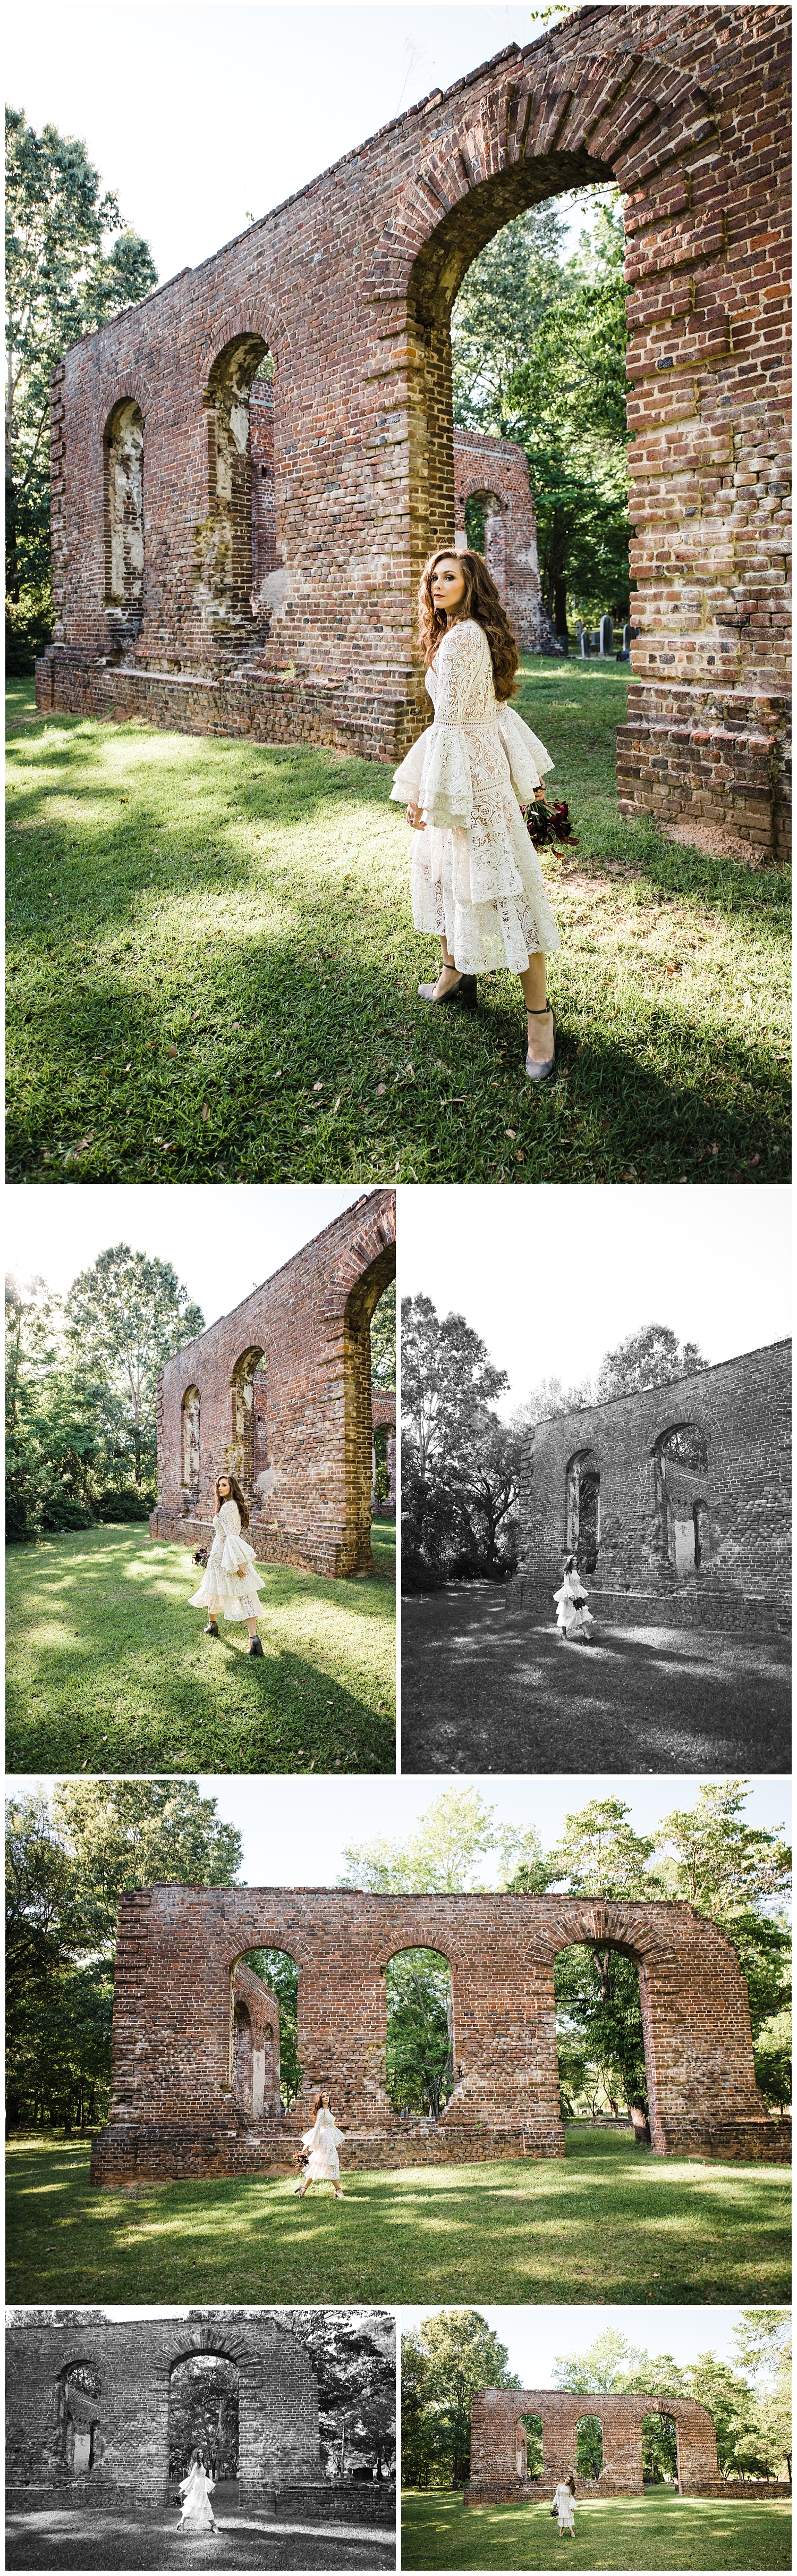 Easterday Creative | Adventurous wedding photographer and storyteller | Eclectic Biggins Church Ruins Styled Shoot | Charleston, SC